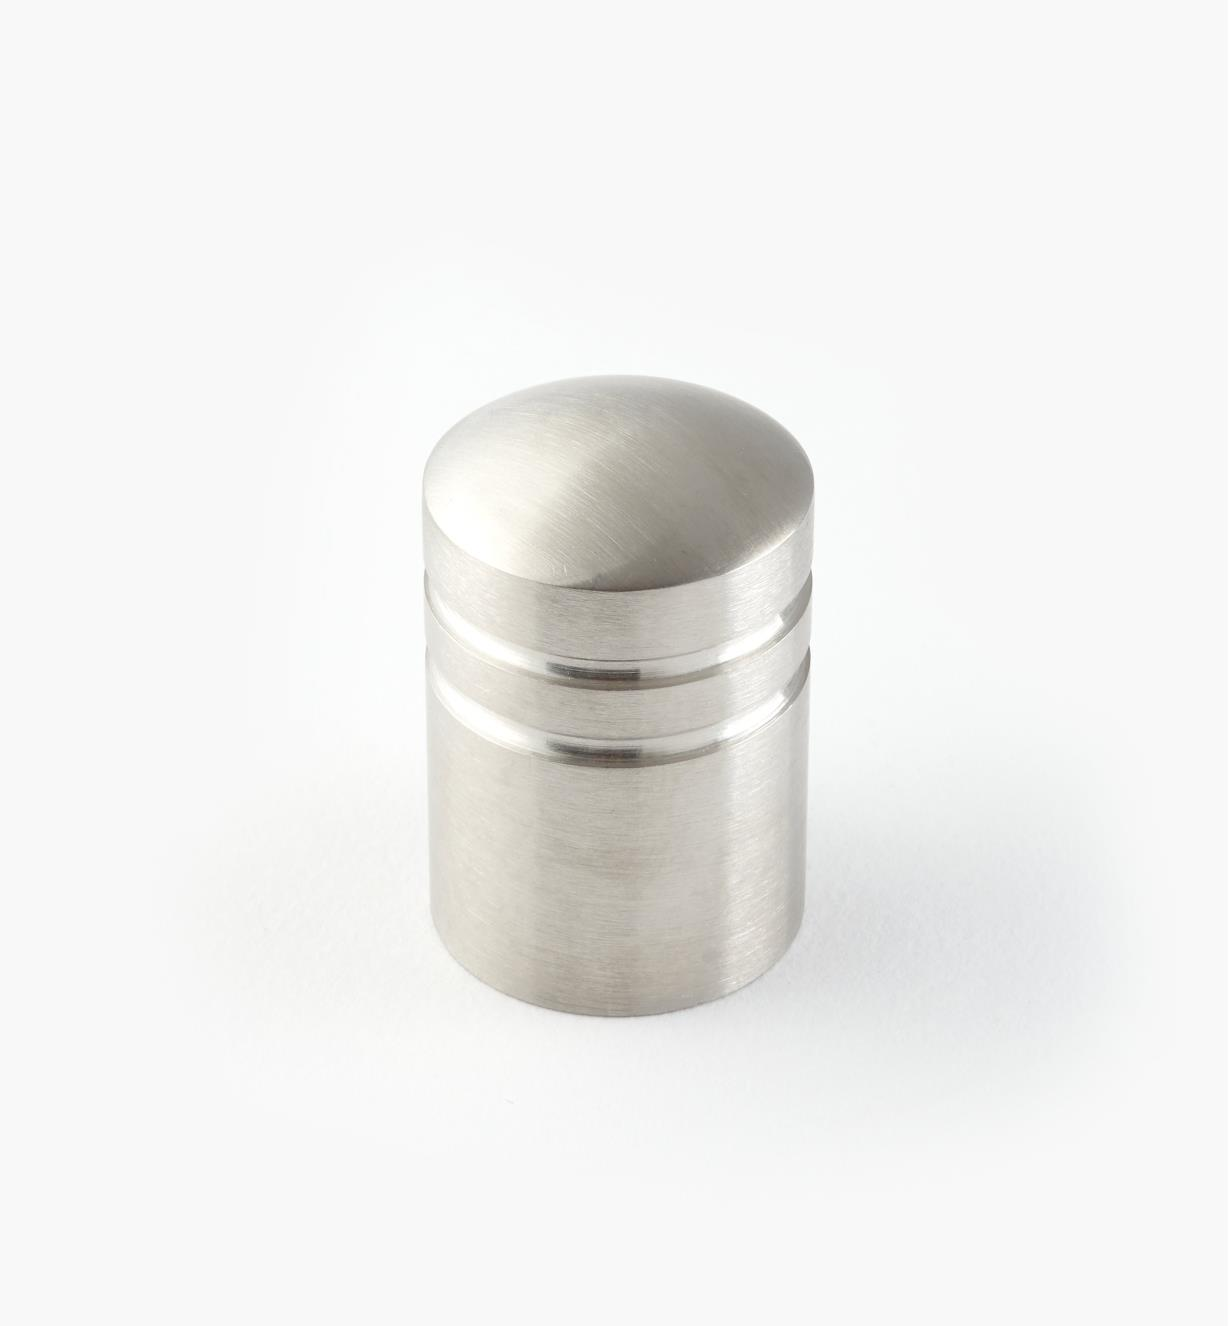 01W6951 - 20mm x 30mm Stainless Steel Ribbed Knob